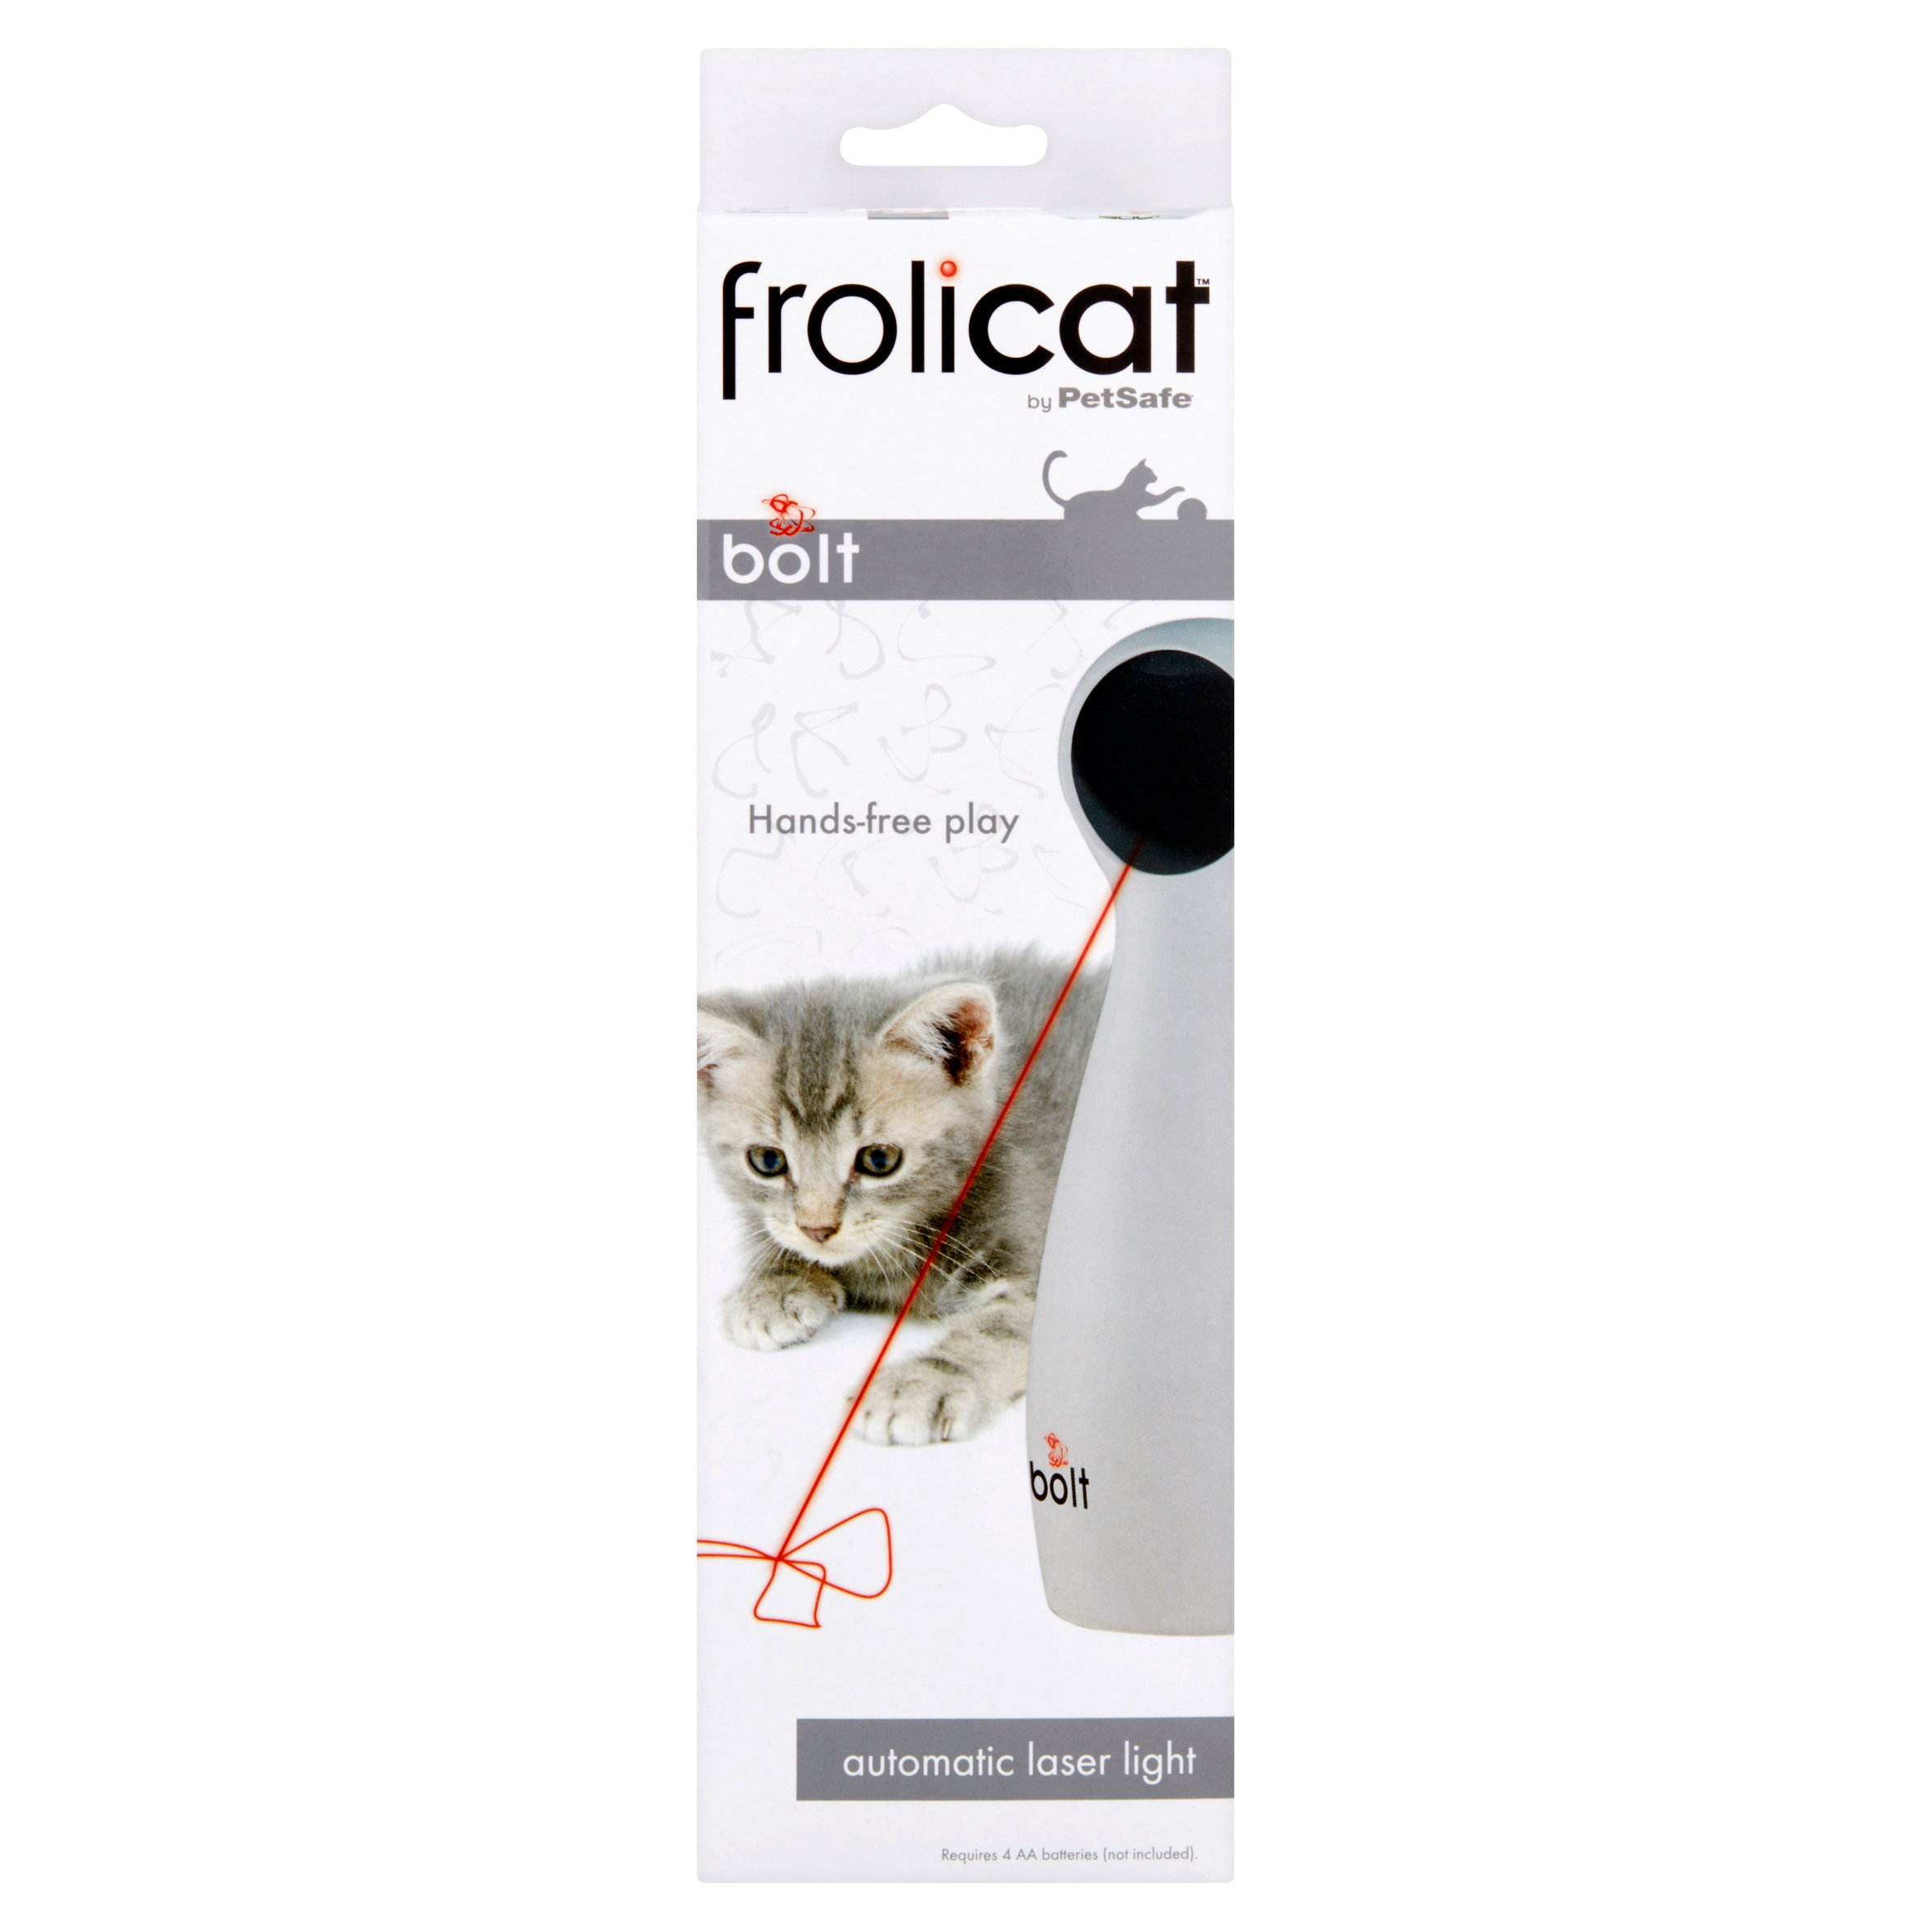 FroliCat Bolt Interactive Laser Light Cat Toy by Radio Systems Corporation